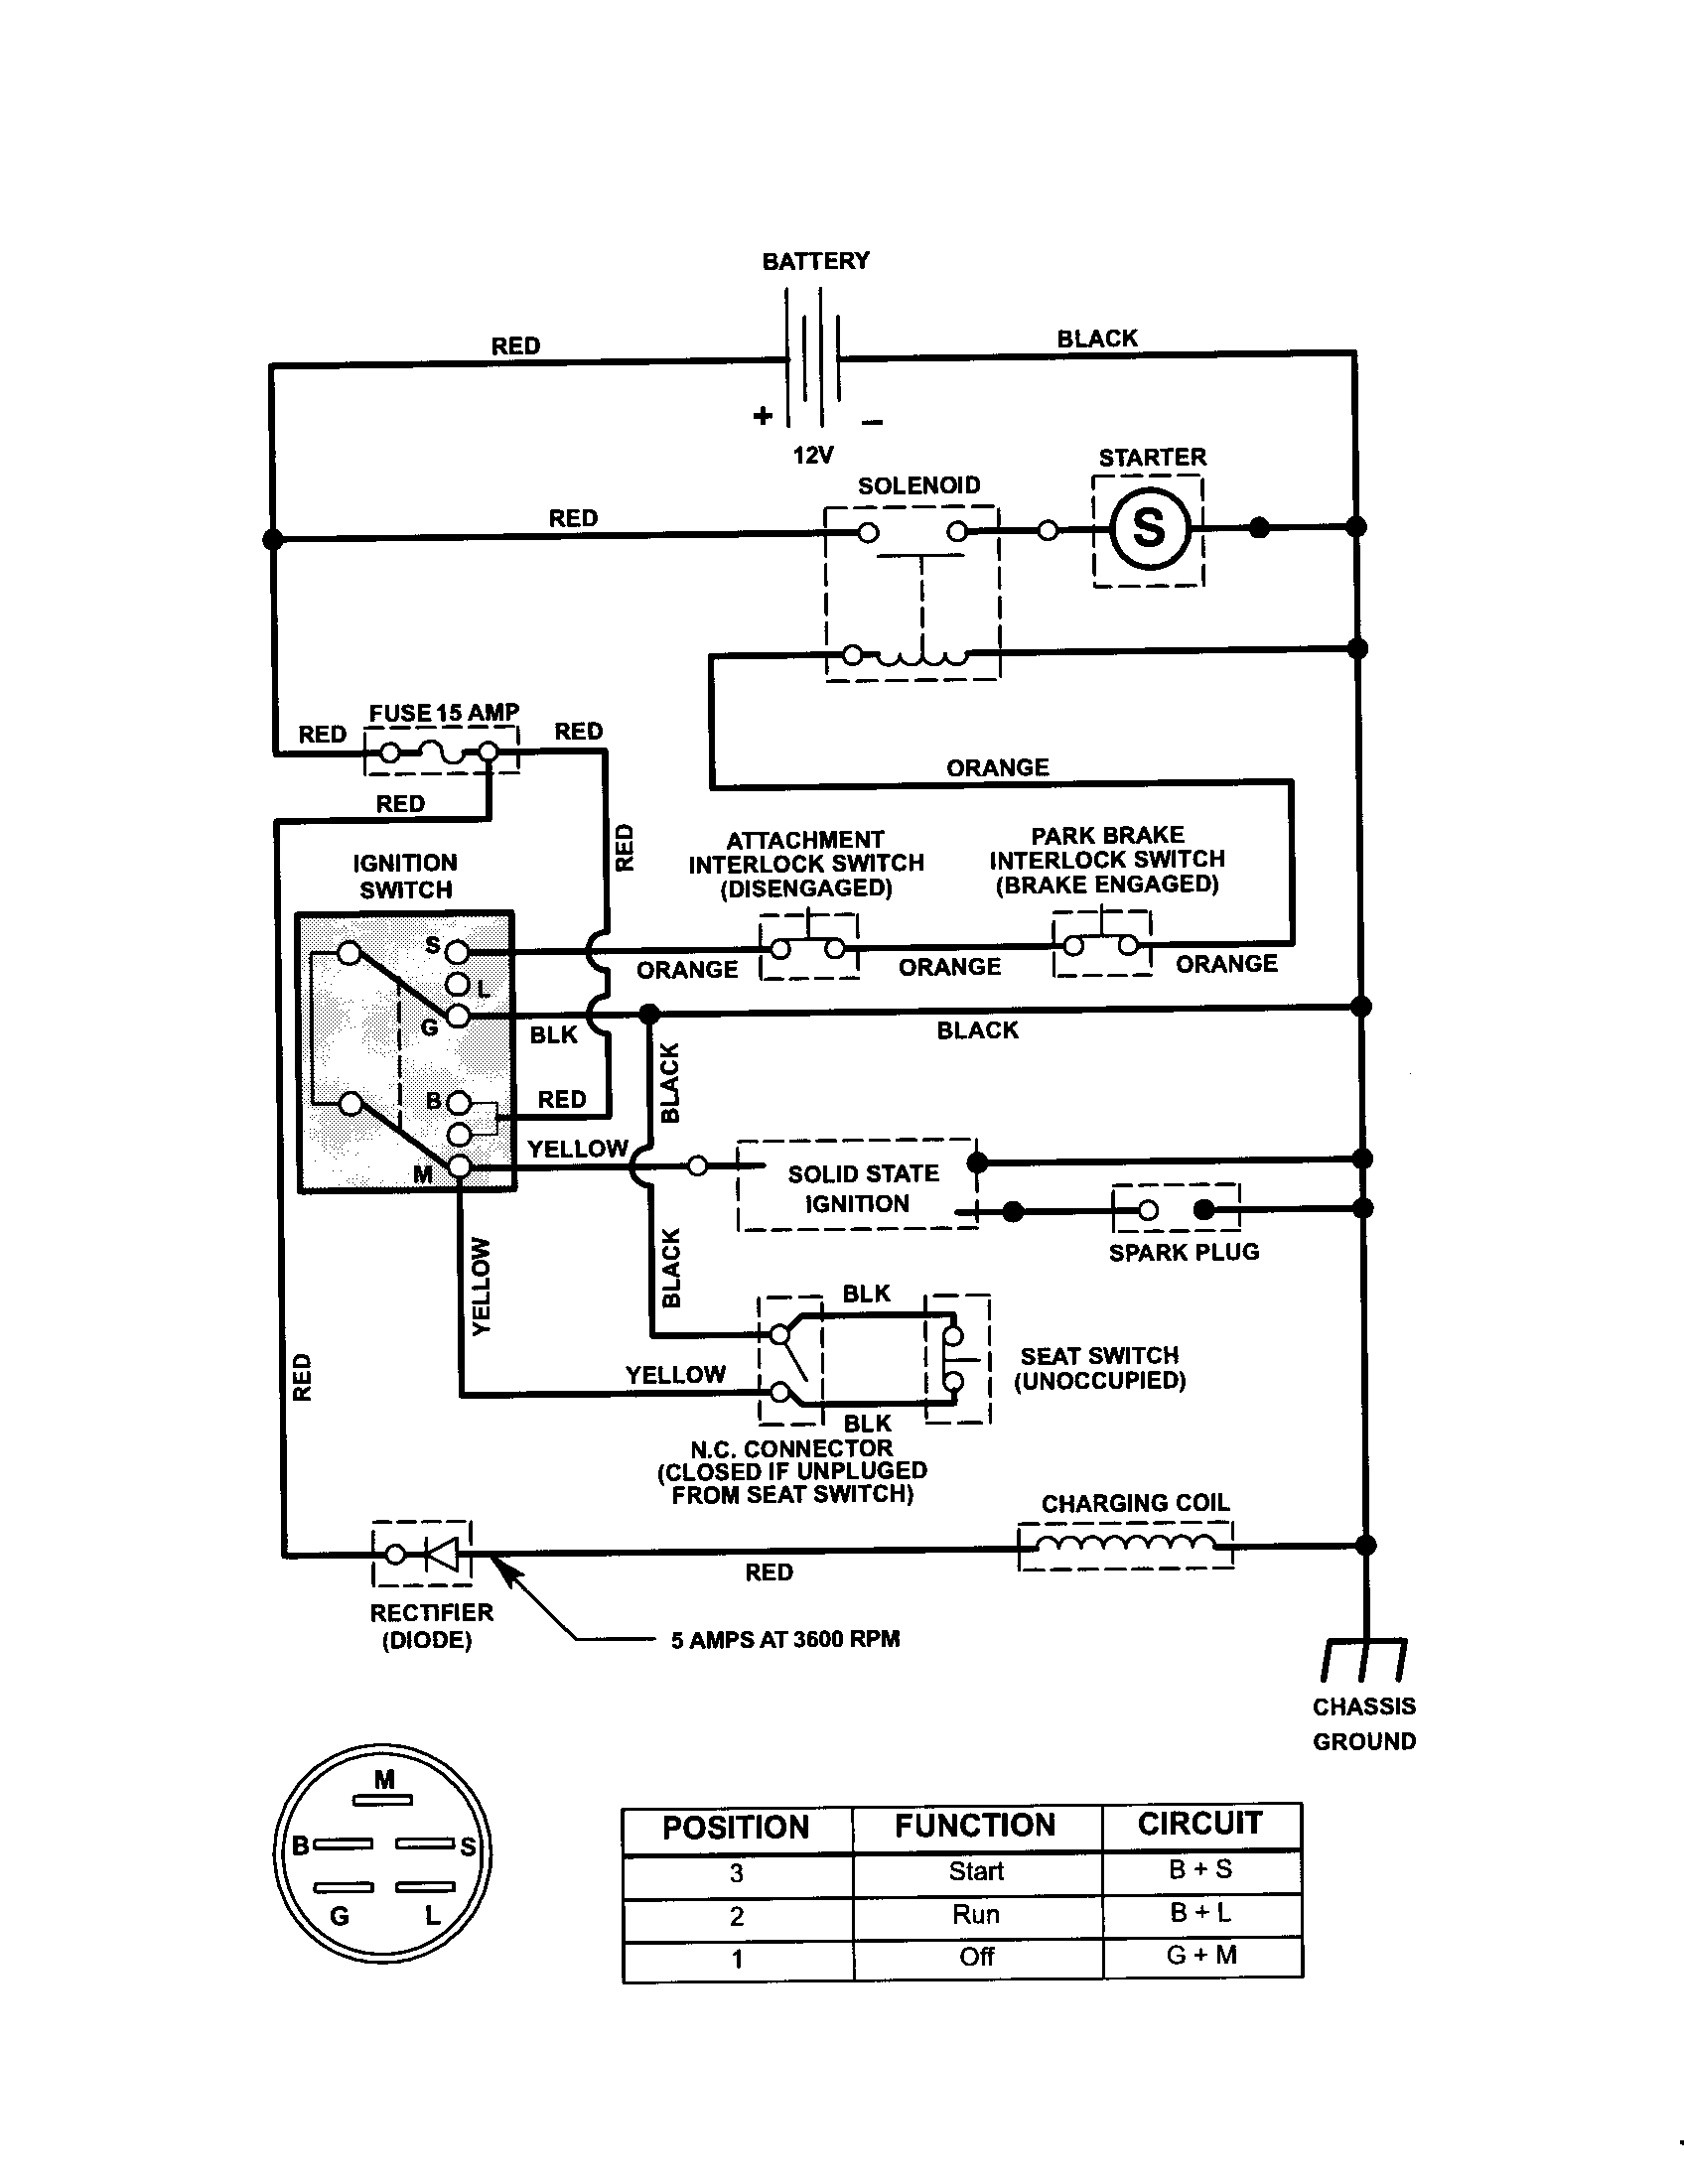 1b4fc64e2bcb7b381848942ff5c84dce craftsman riding mower electrical diagram pictures of craftsman wiring harness for craftsman riding mower at crackthecode.co